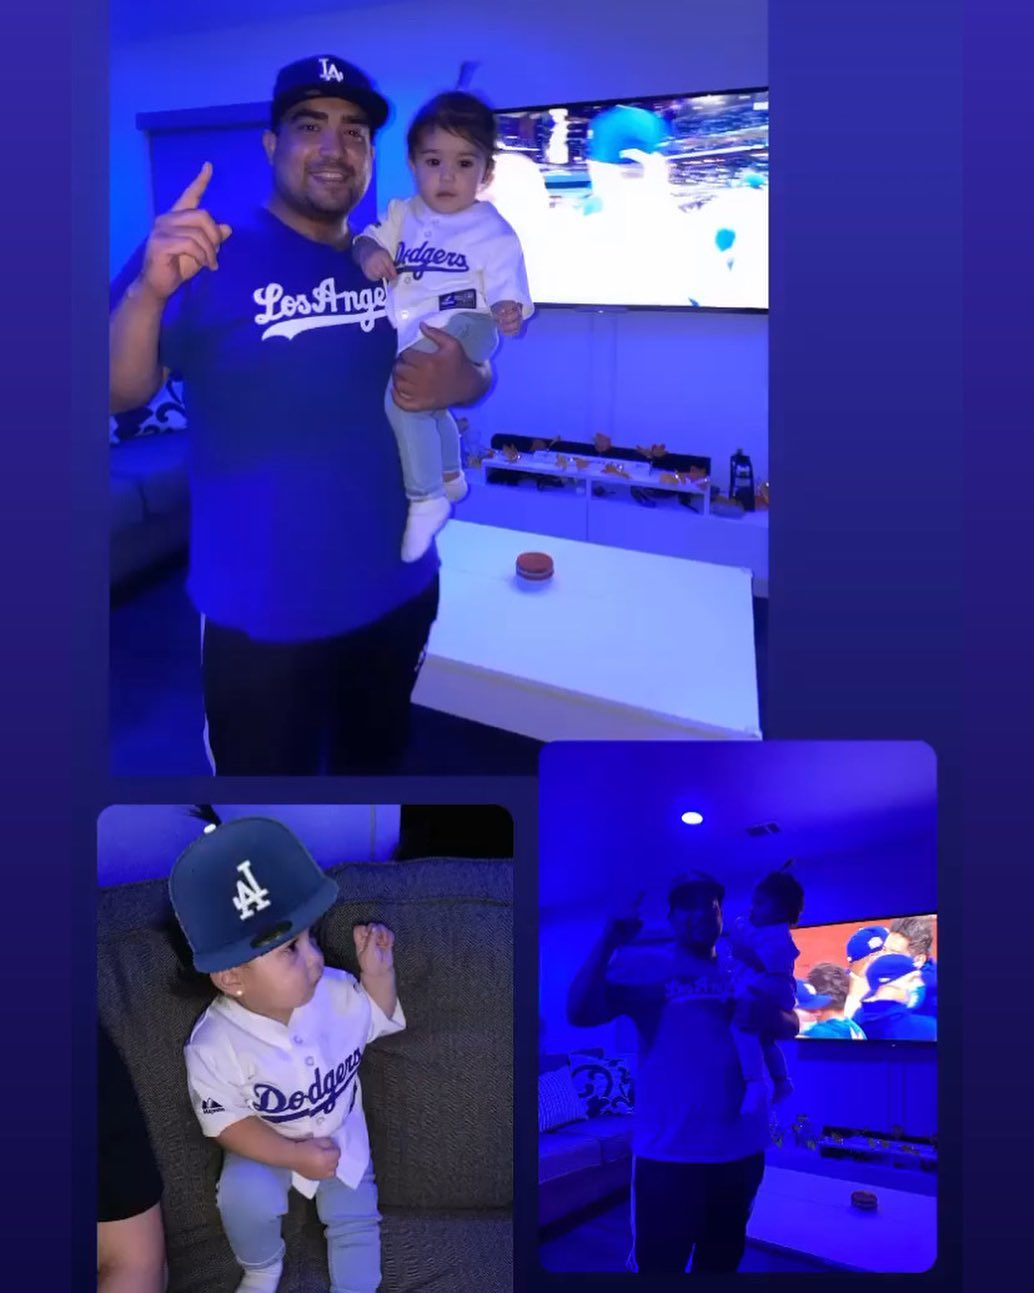 I can't believe Los Angeles has won 2 championships in one year and we couldn't be there but illllll take it! Mila is 2-0 and doesn't know what it has been like all these years with all these losses!!! Damn I'm soooo happy ! ⁣ .⁣ .⁣ .⁣ .⁣ .⁣